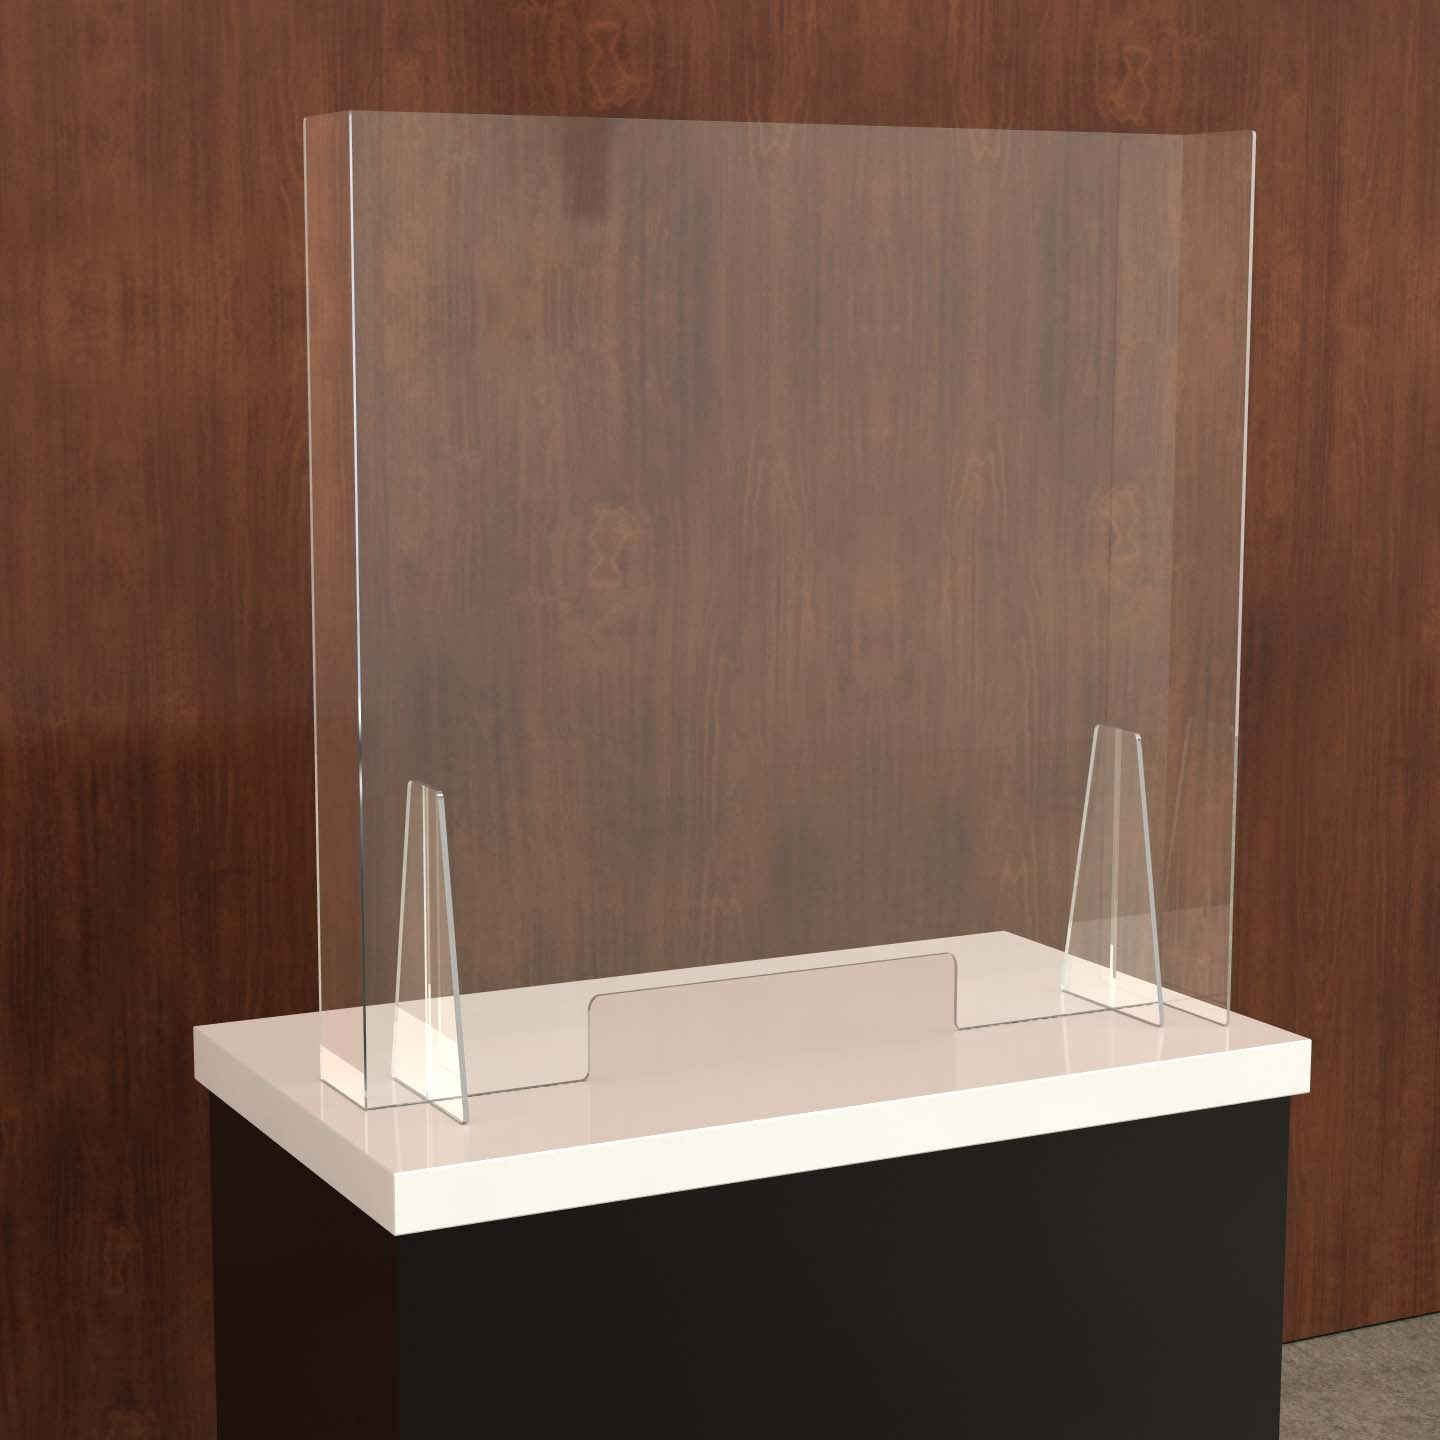 Counter Shields | Reception Desk Shields